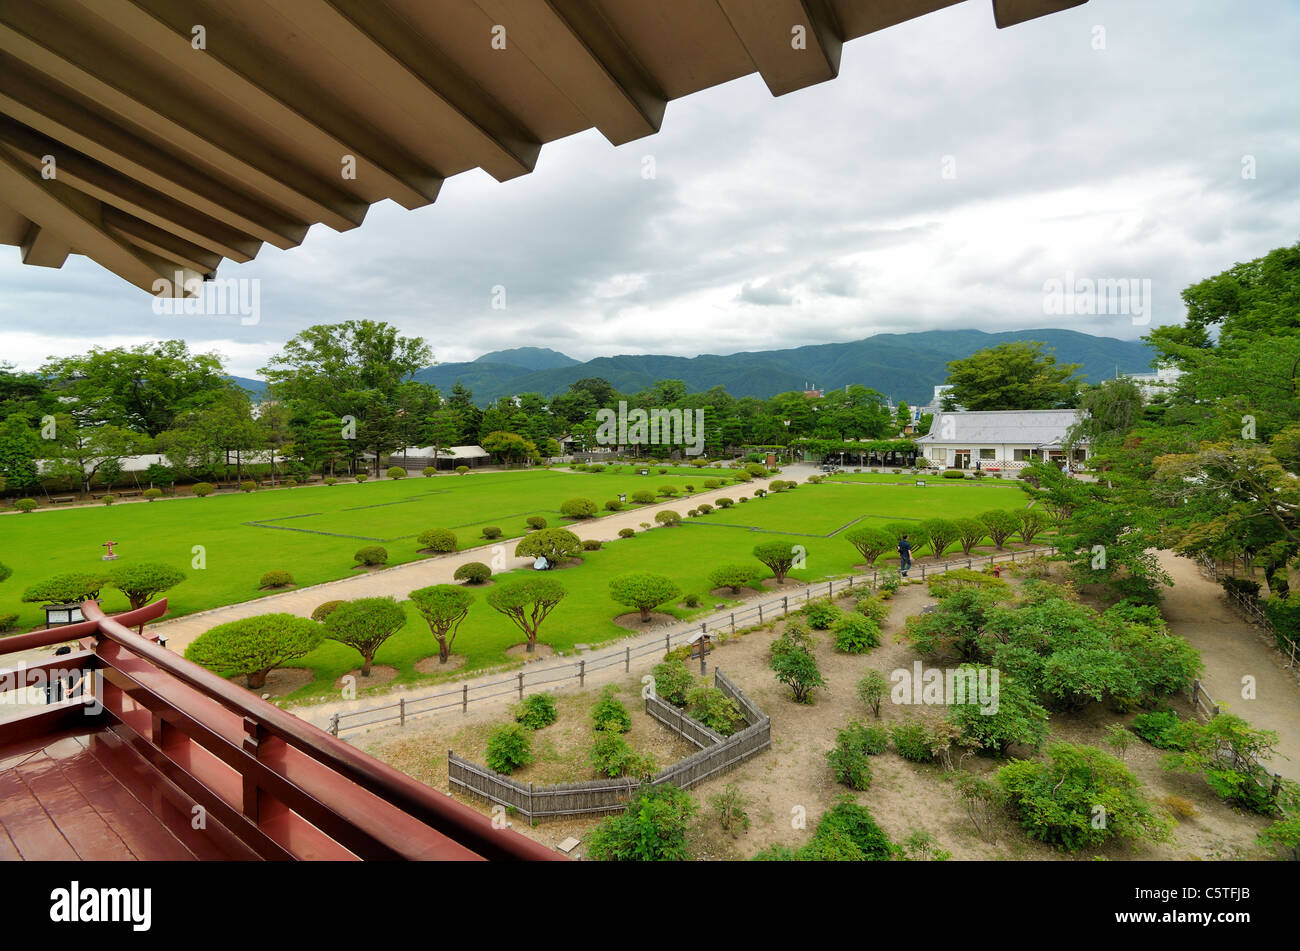 Matsumoto castle grounds viewed from an upper-level veranda in Nagano prefecture, Japan. - Stock Image